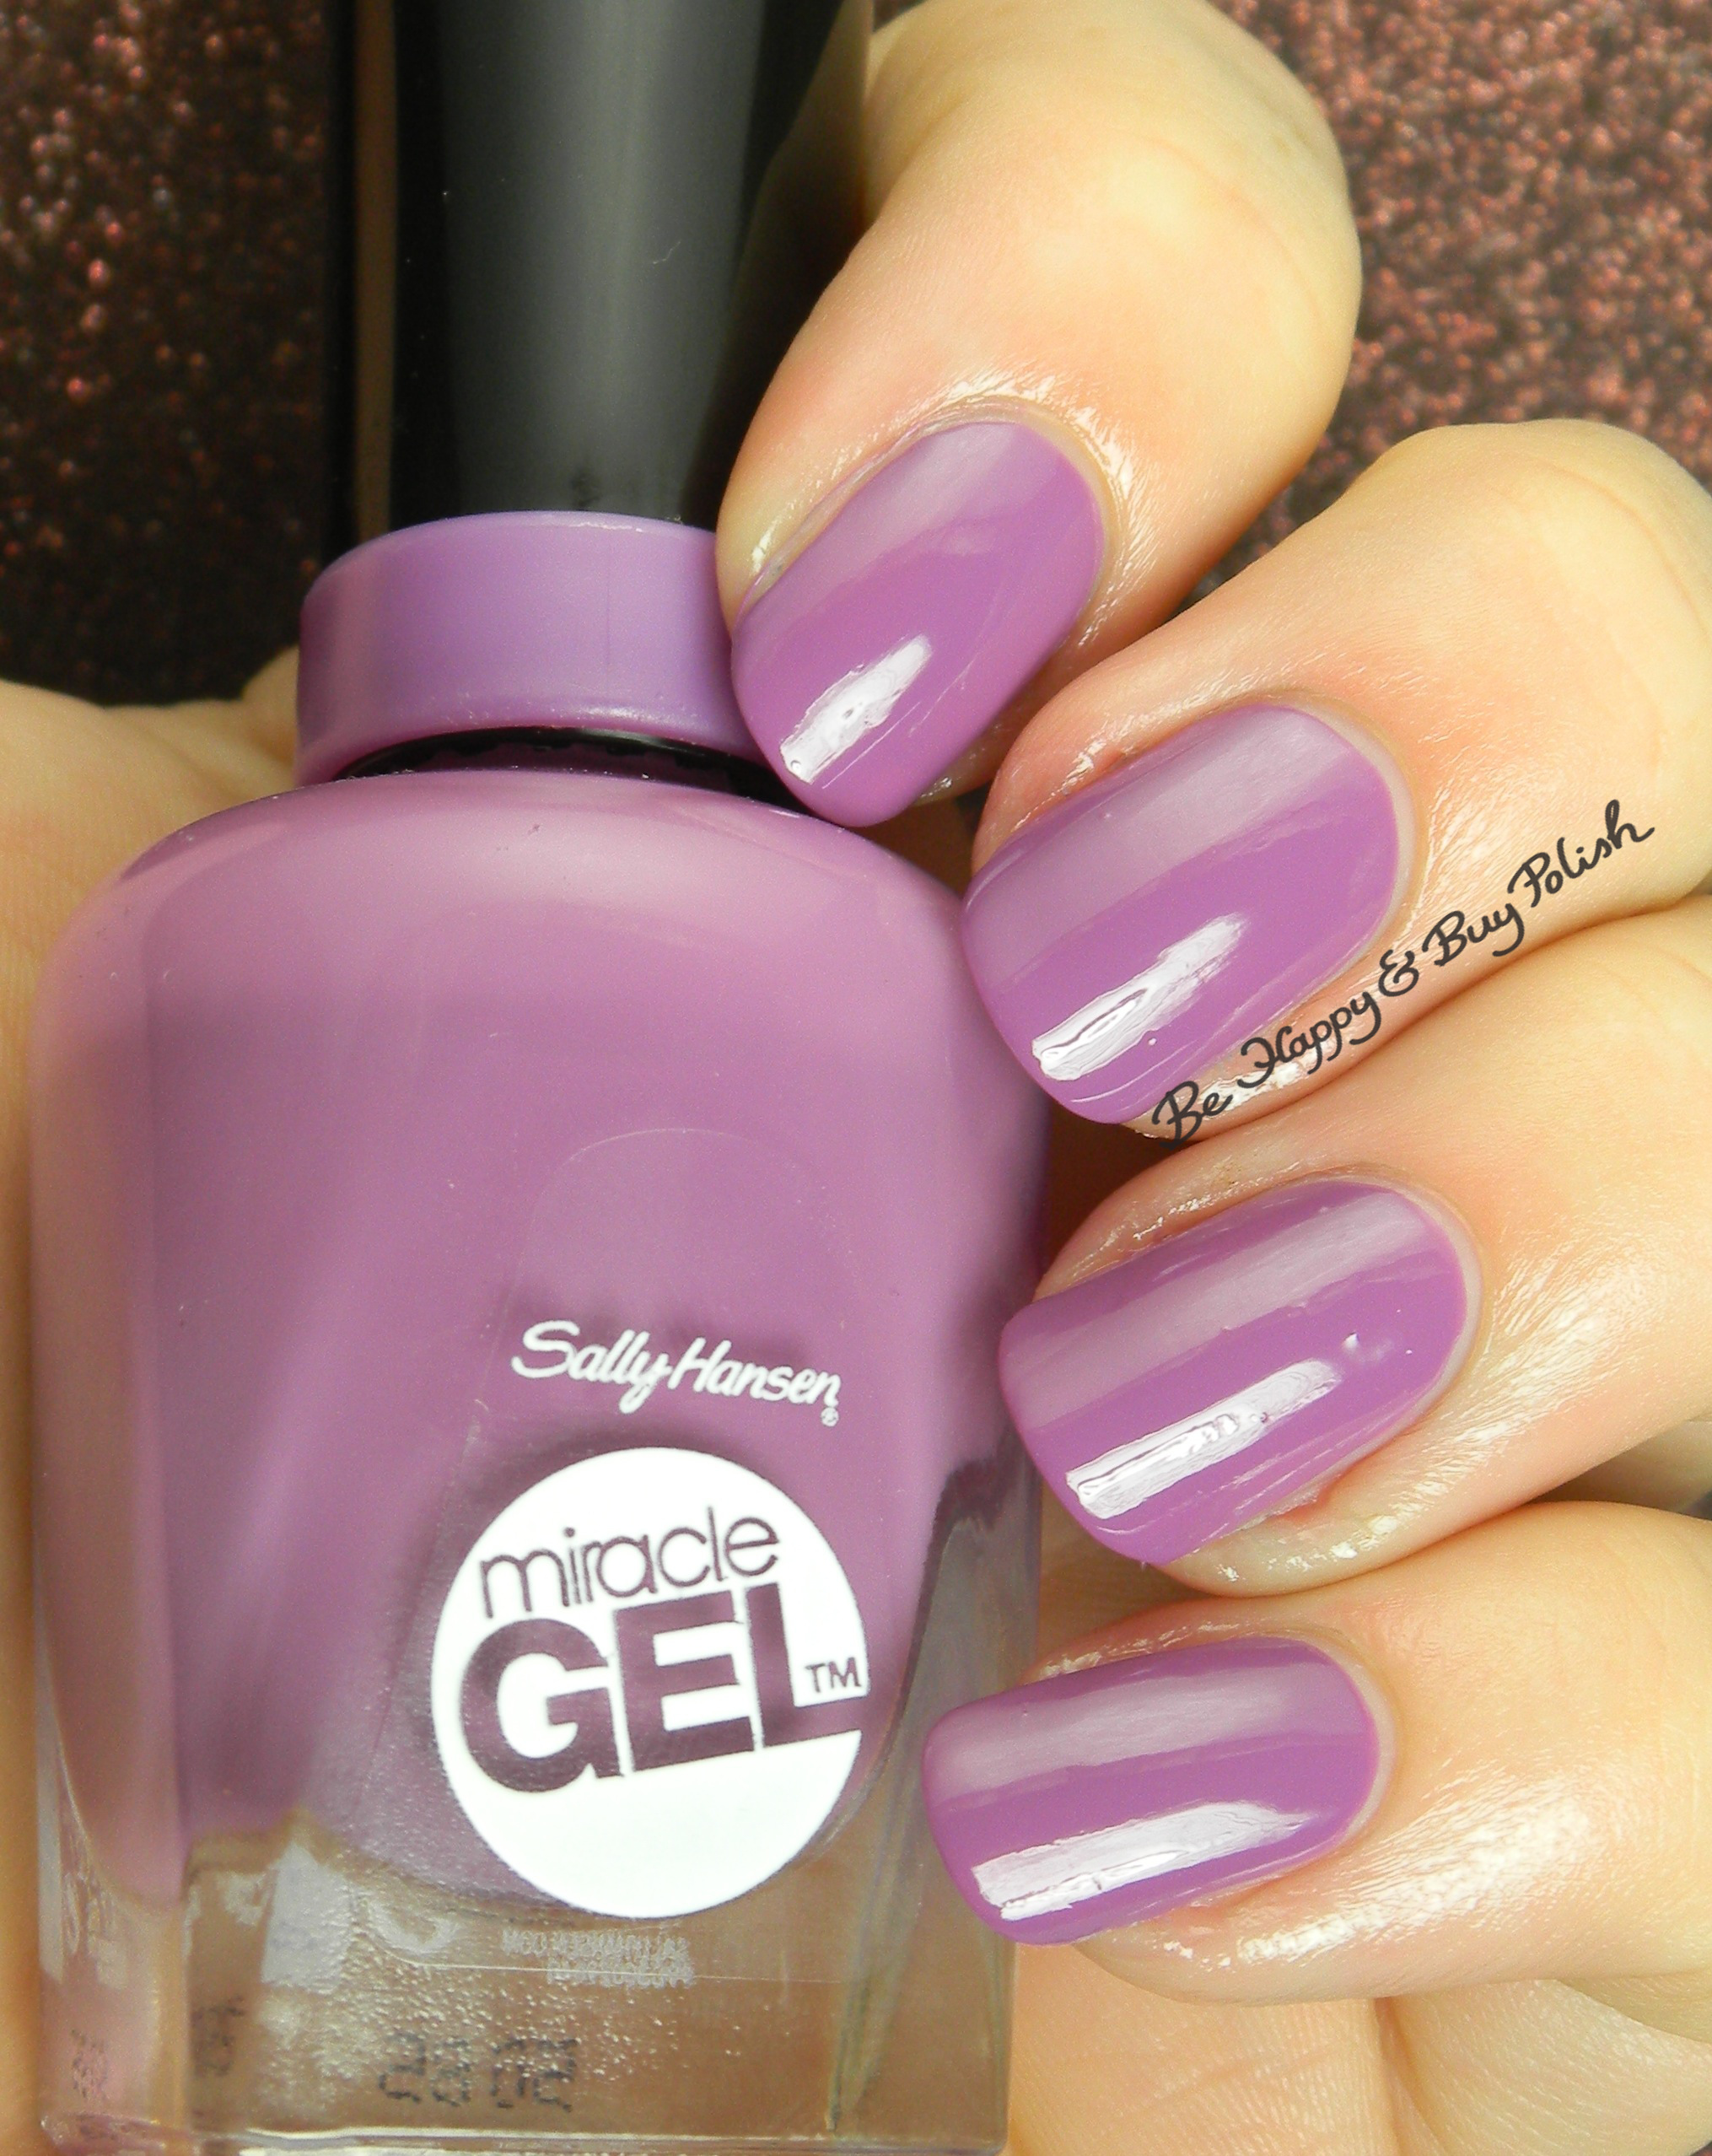 Sally Hansen Miracle Gel Limited Edition Duo Pack Nail Polishes Swatches Review Be Happy And